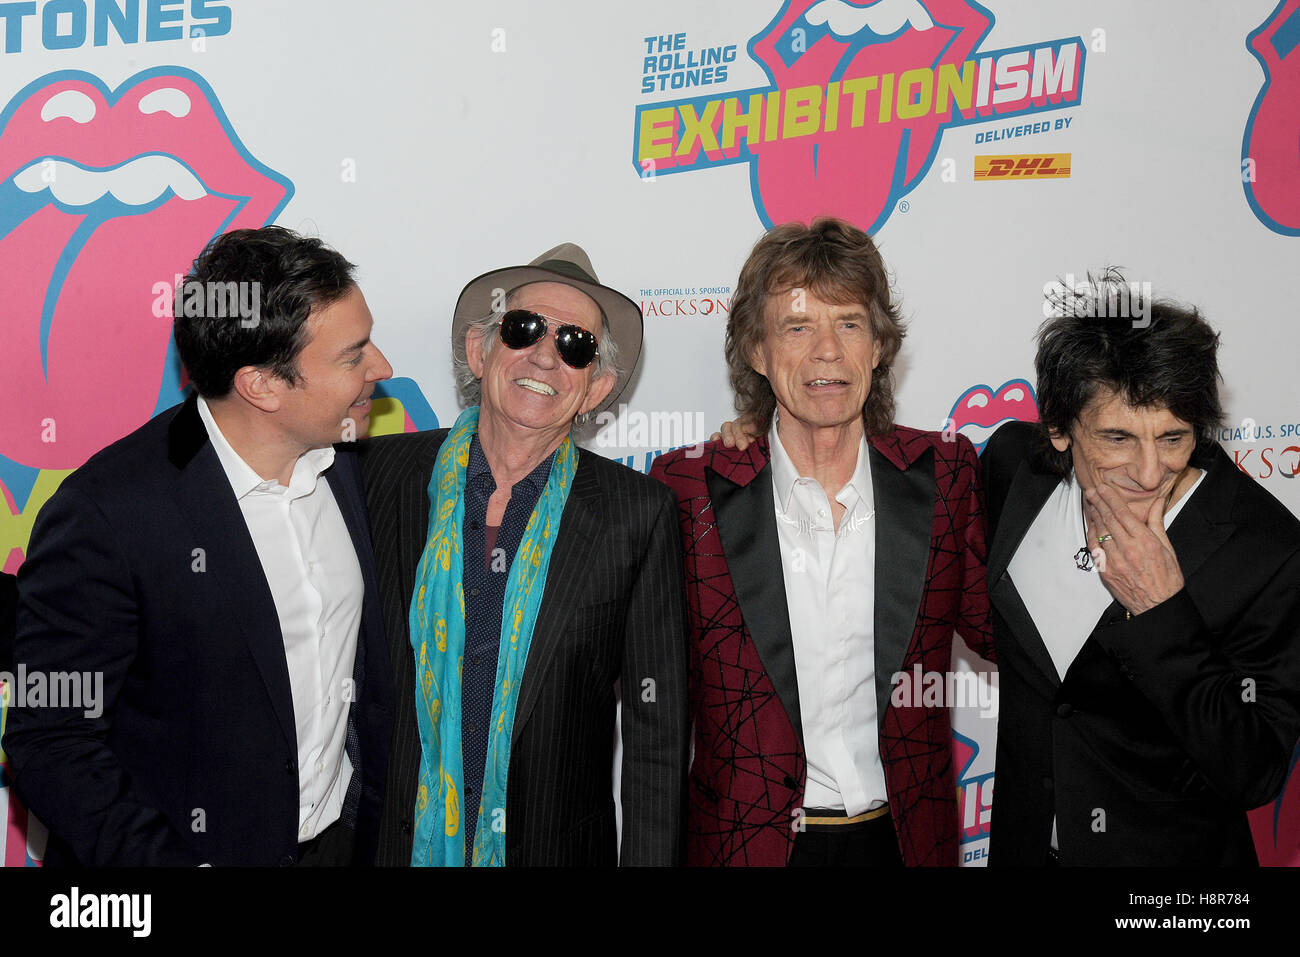 New York, NY, USA. 15th Nov, 2016. Jimmy Fallon, Keith Richards, Mick Jagger and Ronnie Wood attends The Rolling - Stock Image